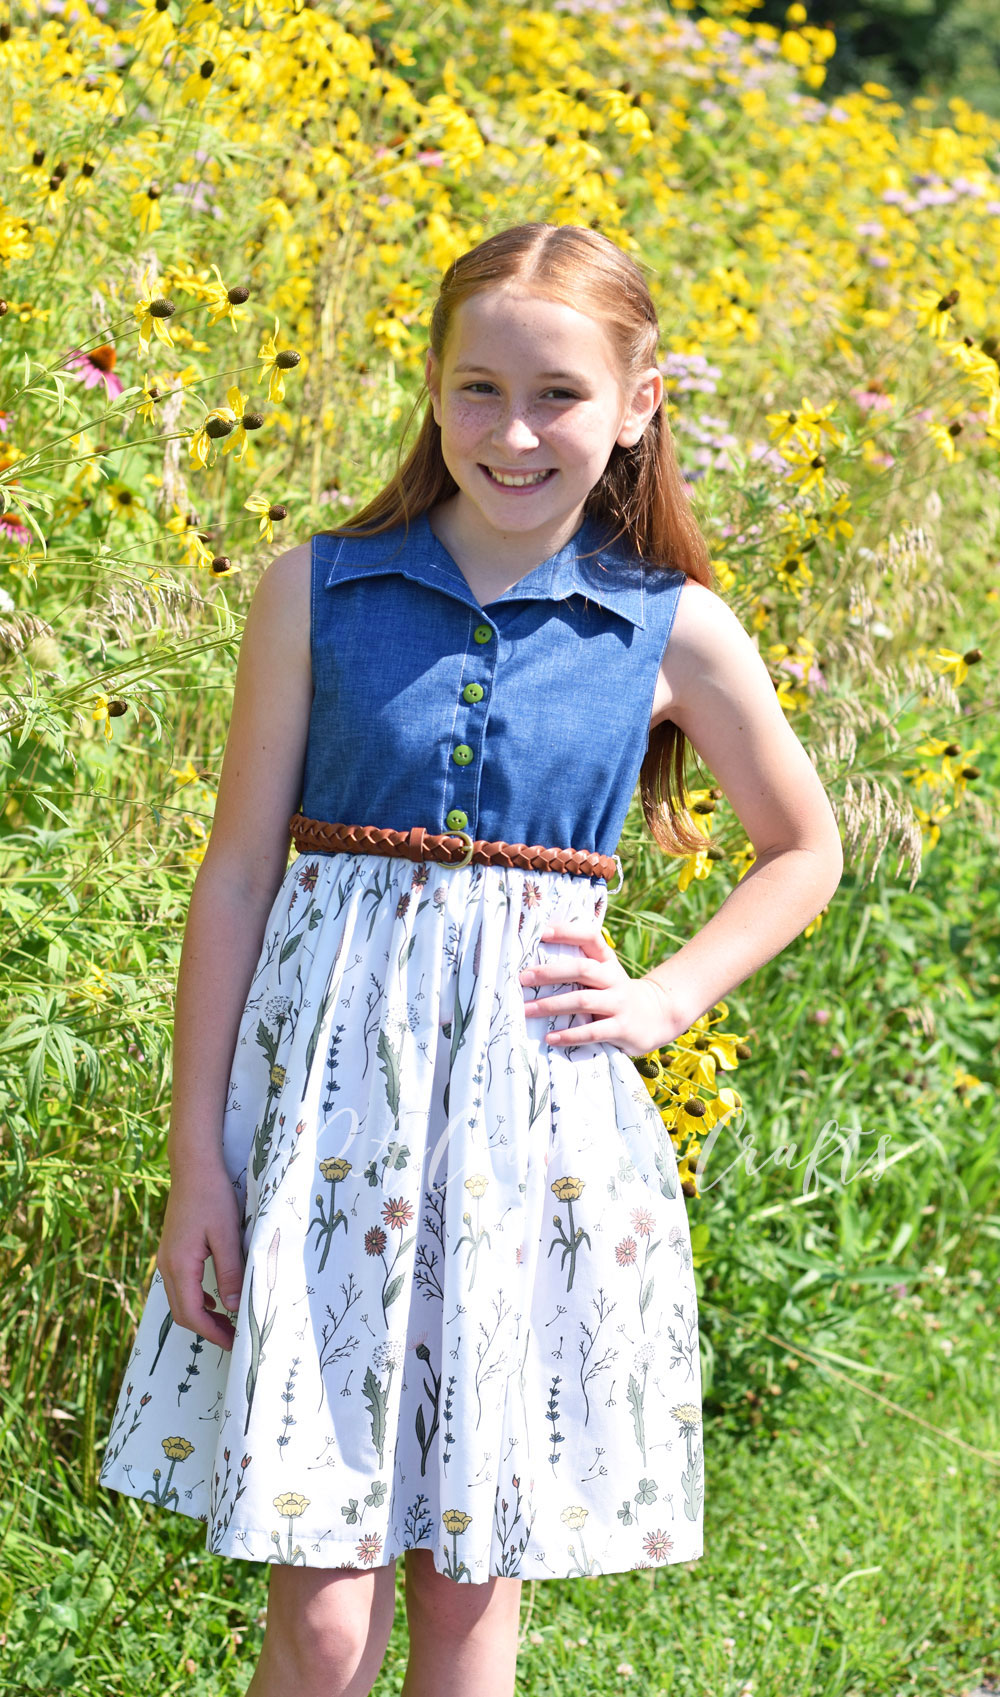 VFT Hattie Dress in Wildflower Surprise cotton poplin fabric